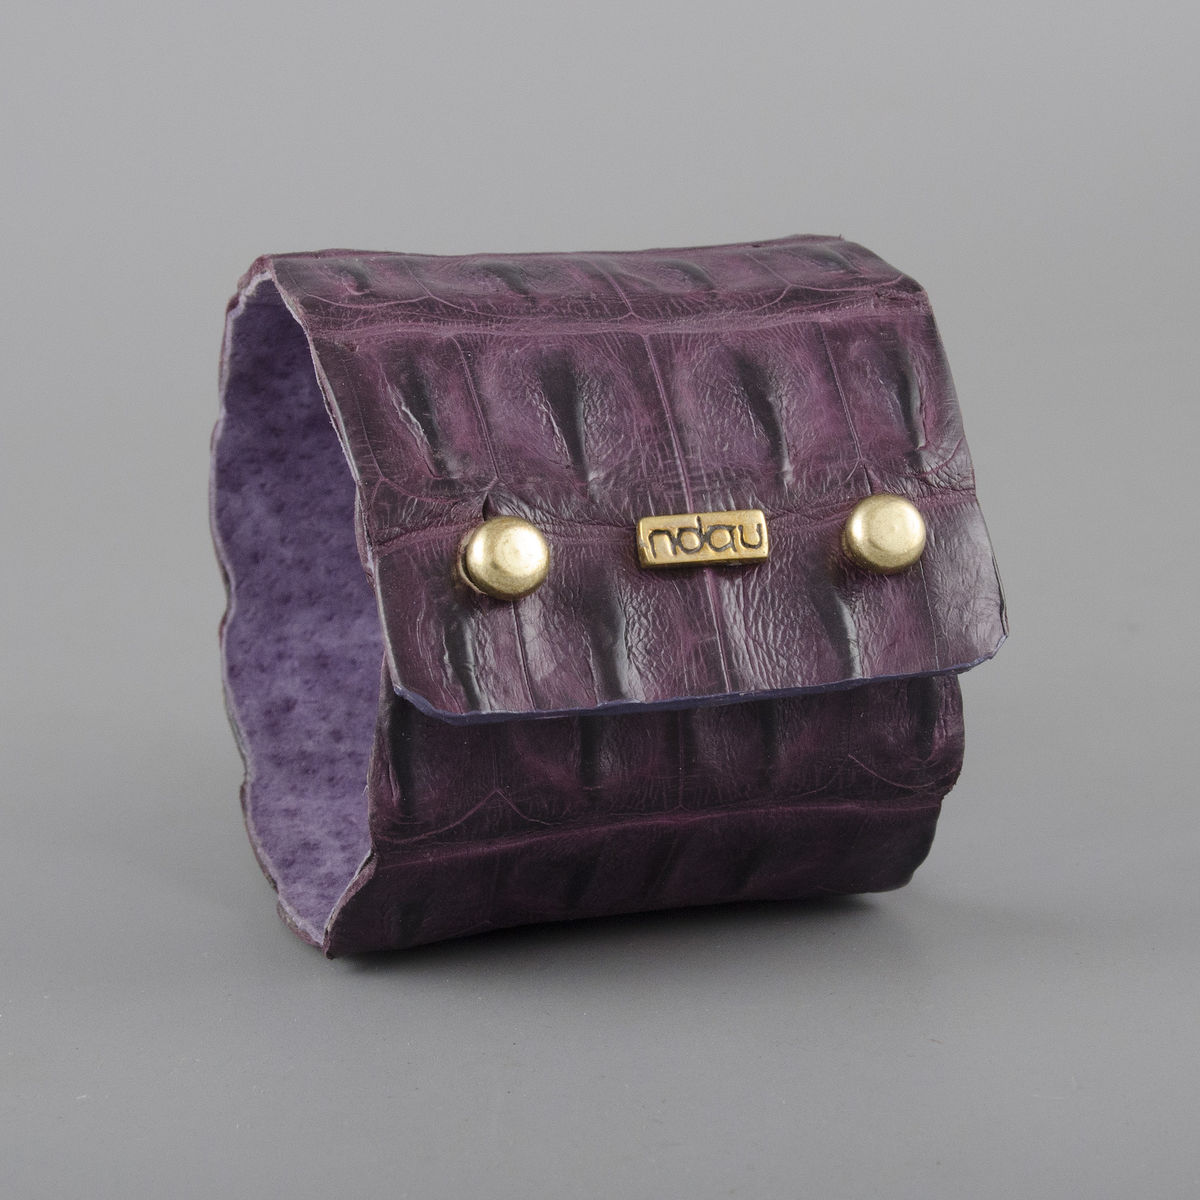 Crocodile Backskin Leather Rock Cuff with Double Holster in Dark Acai - product image